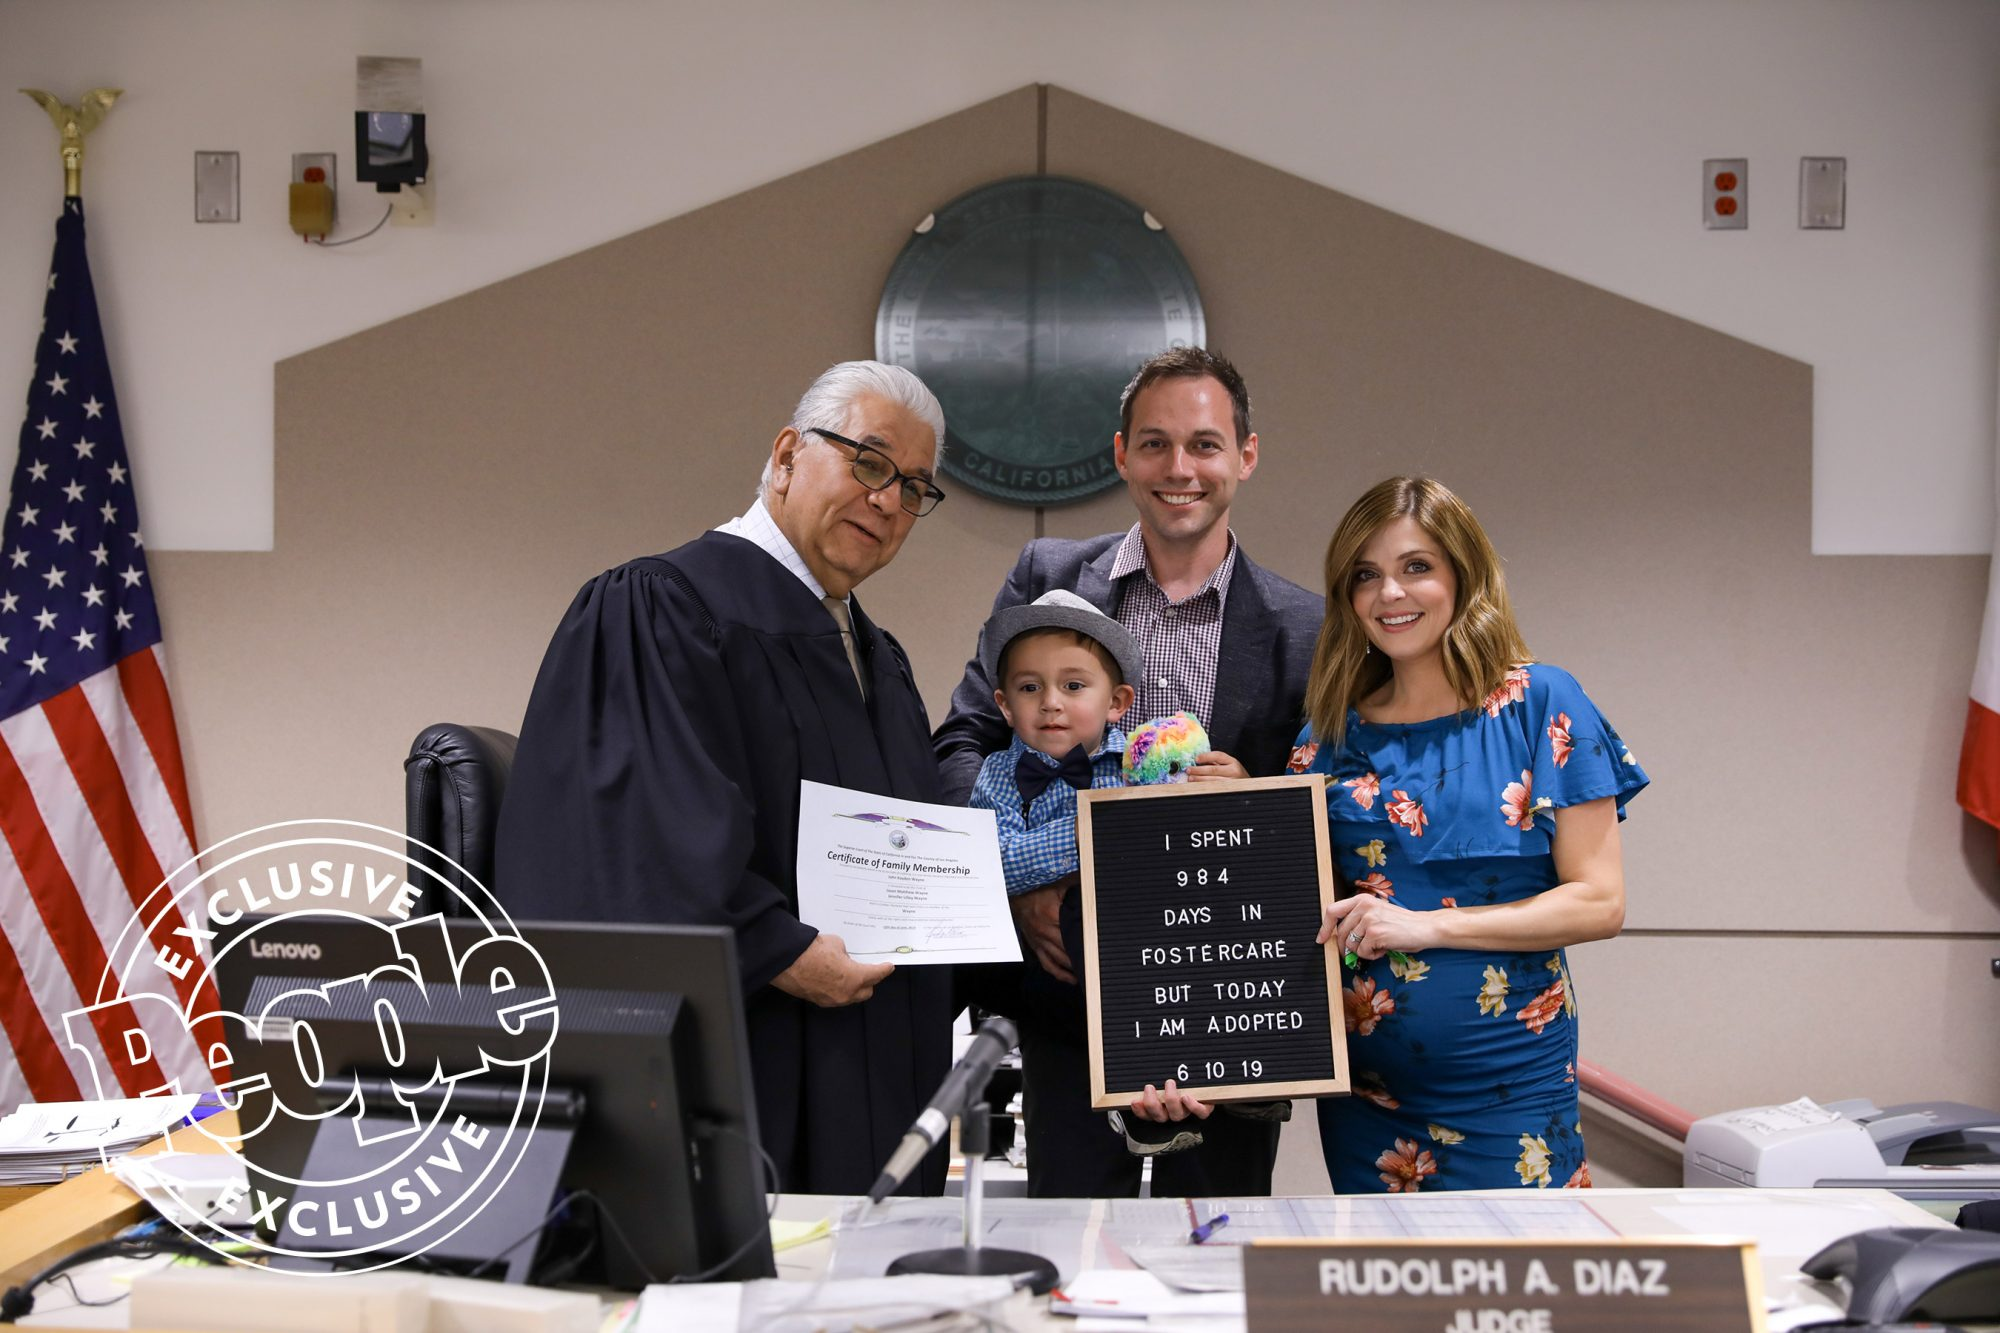 Jen Lilley celebrated the adoption of her son